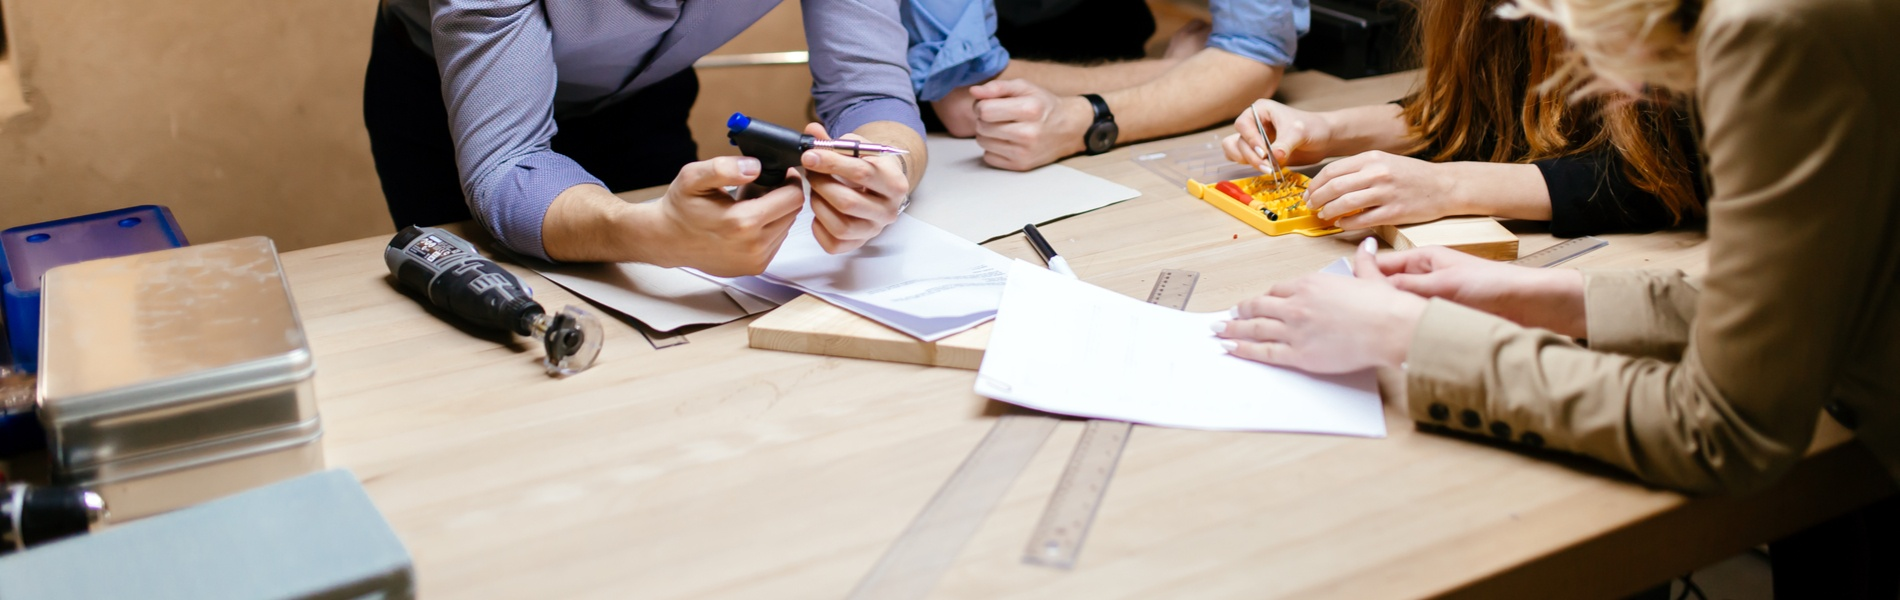 outsourcing_product_design